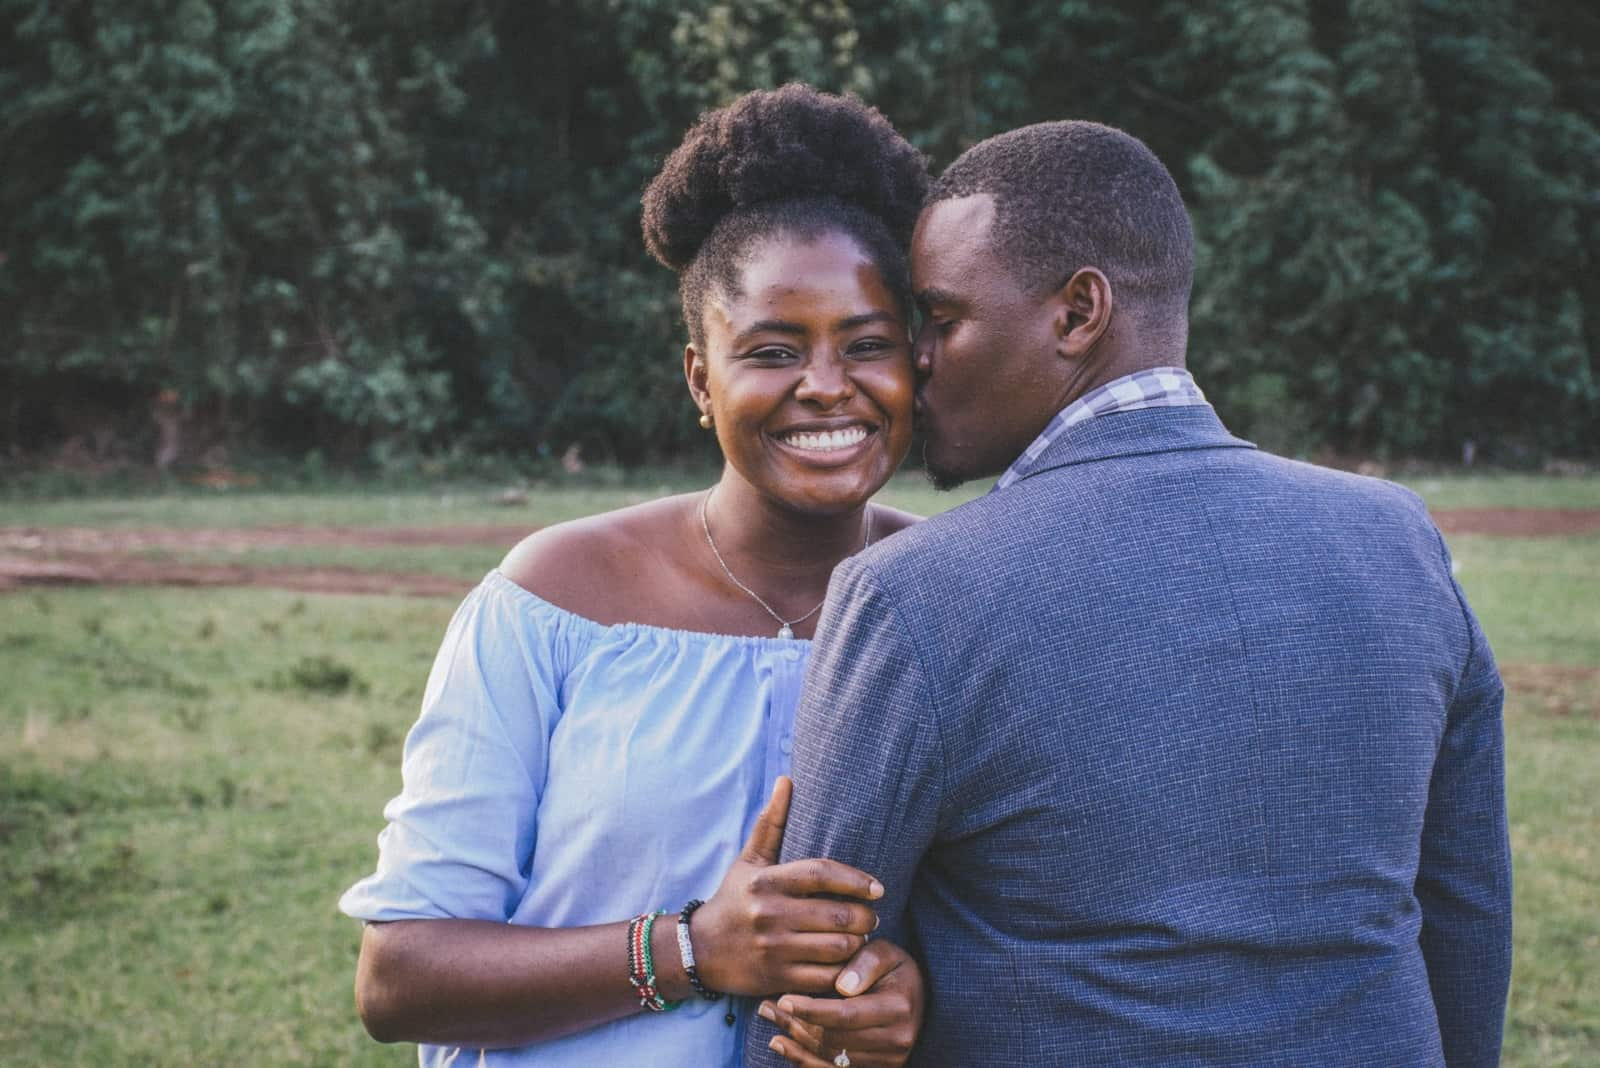 man kissing woman on cheek while standing outdoor